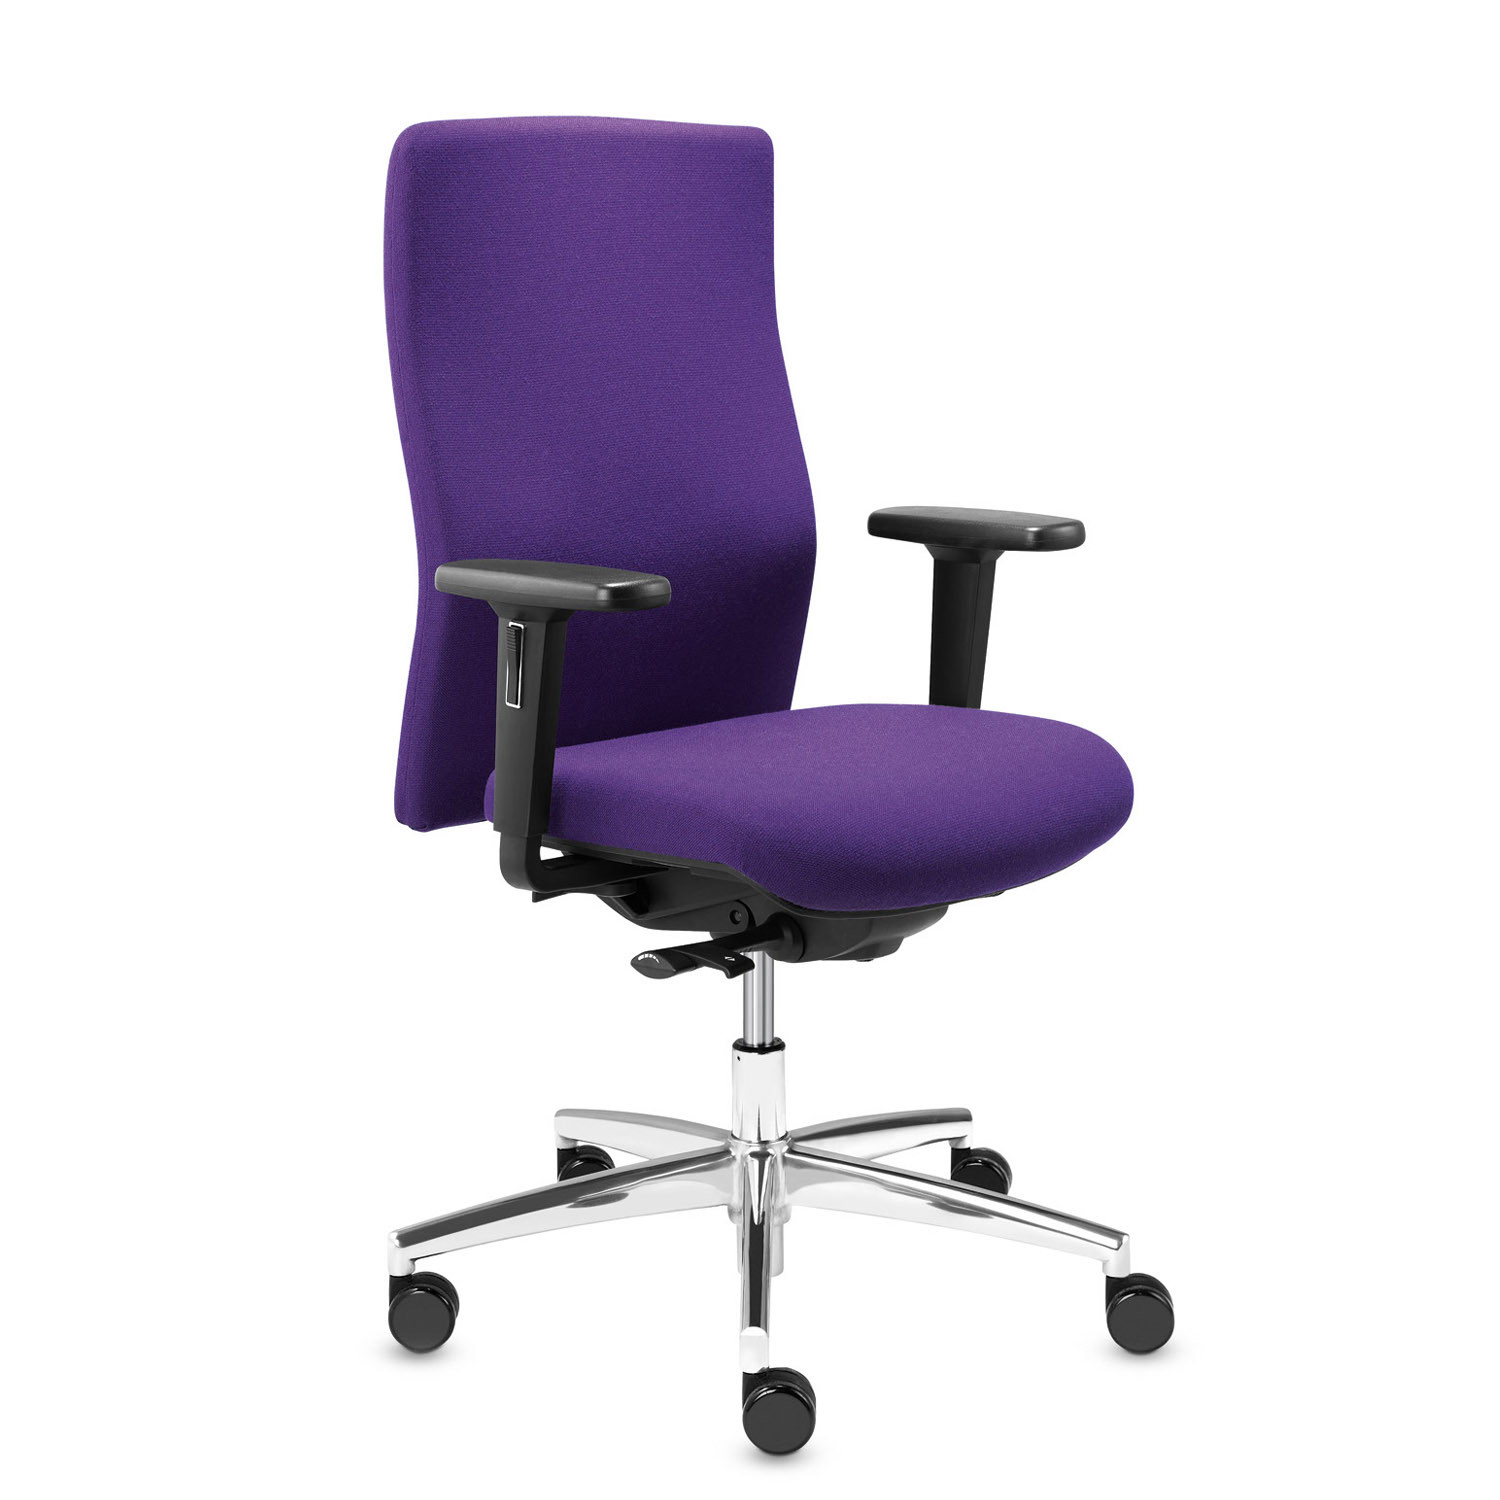 Sim-O Synchron Office Chair SM96335